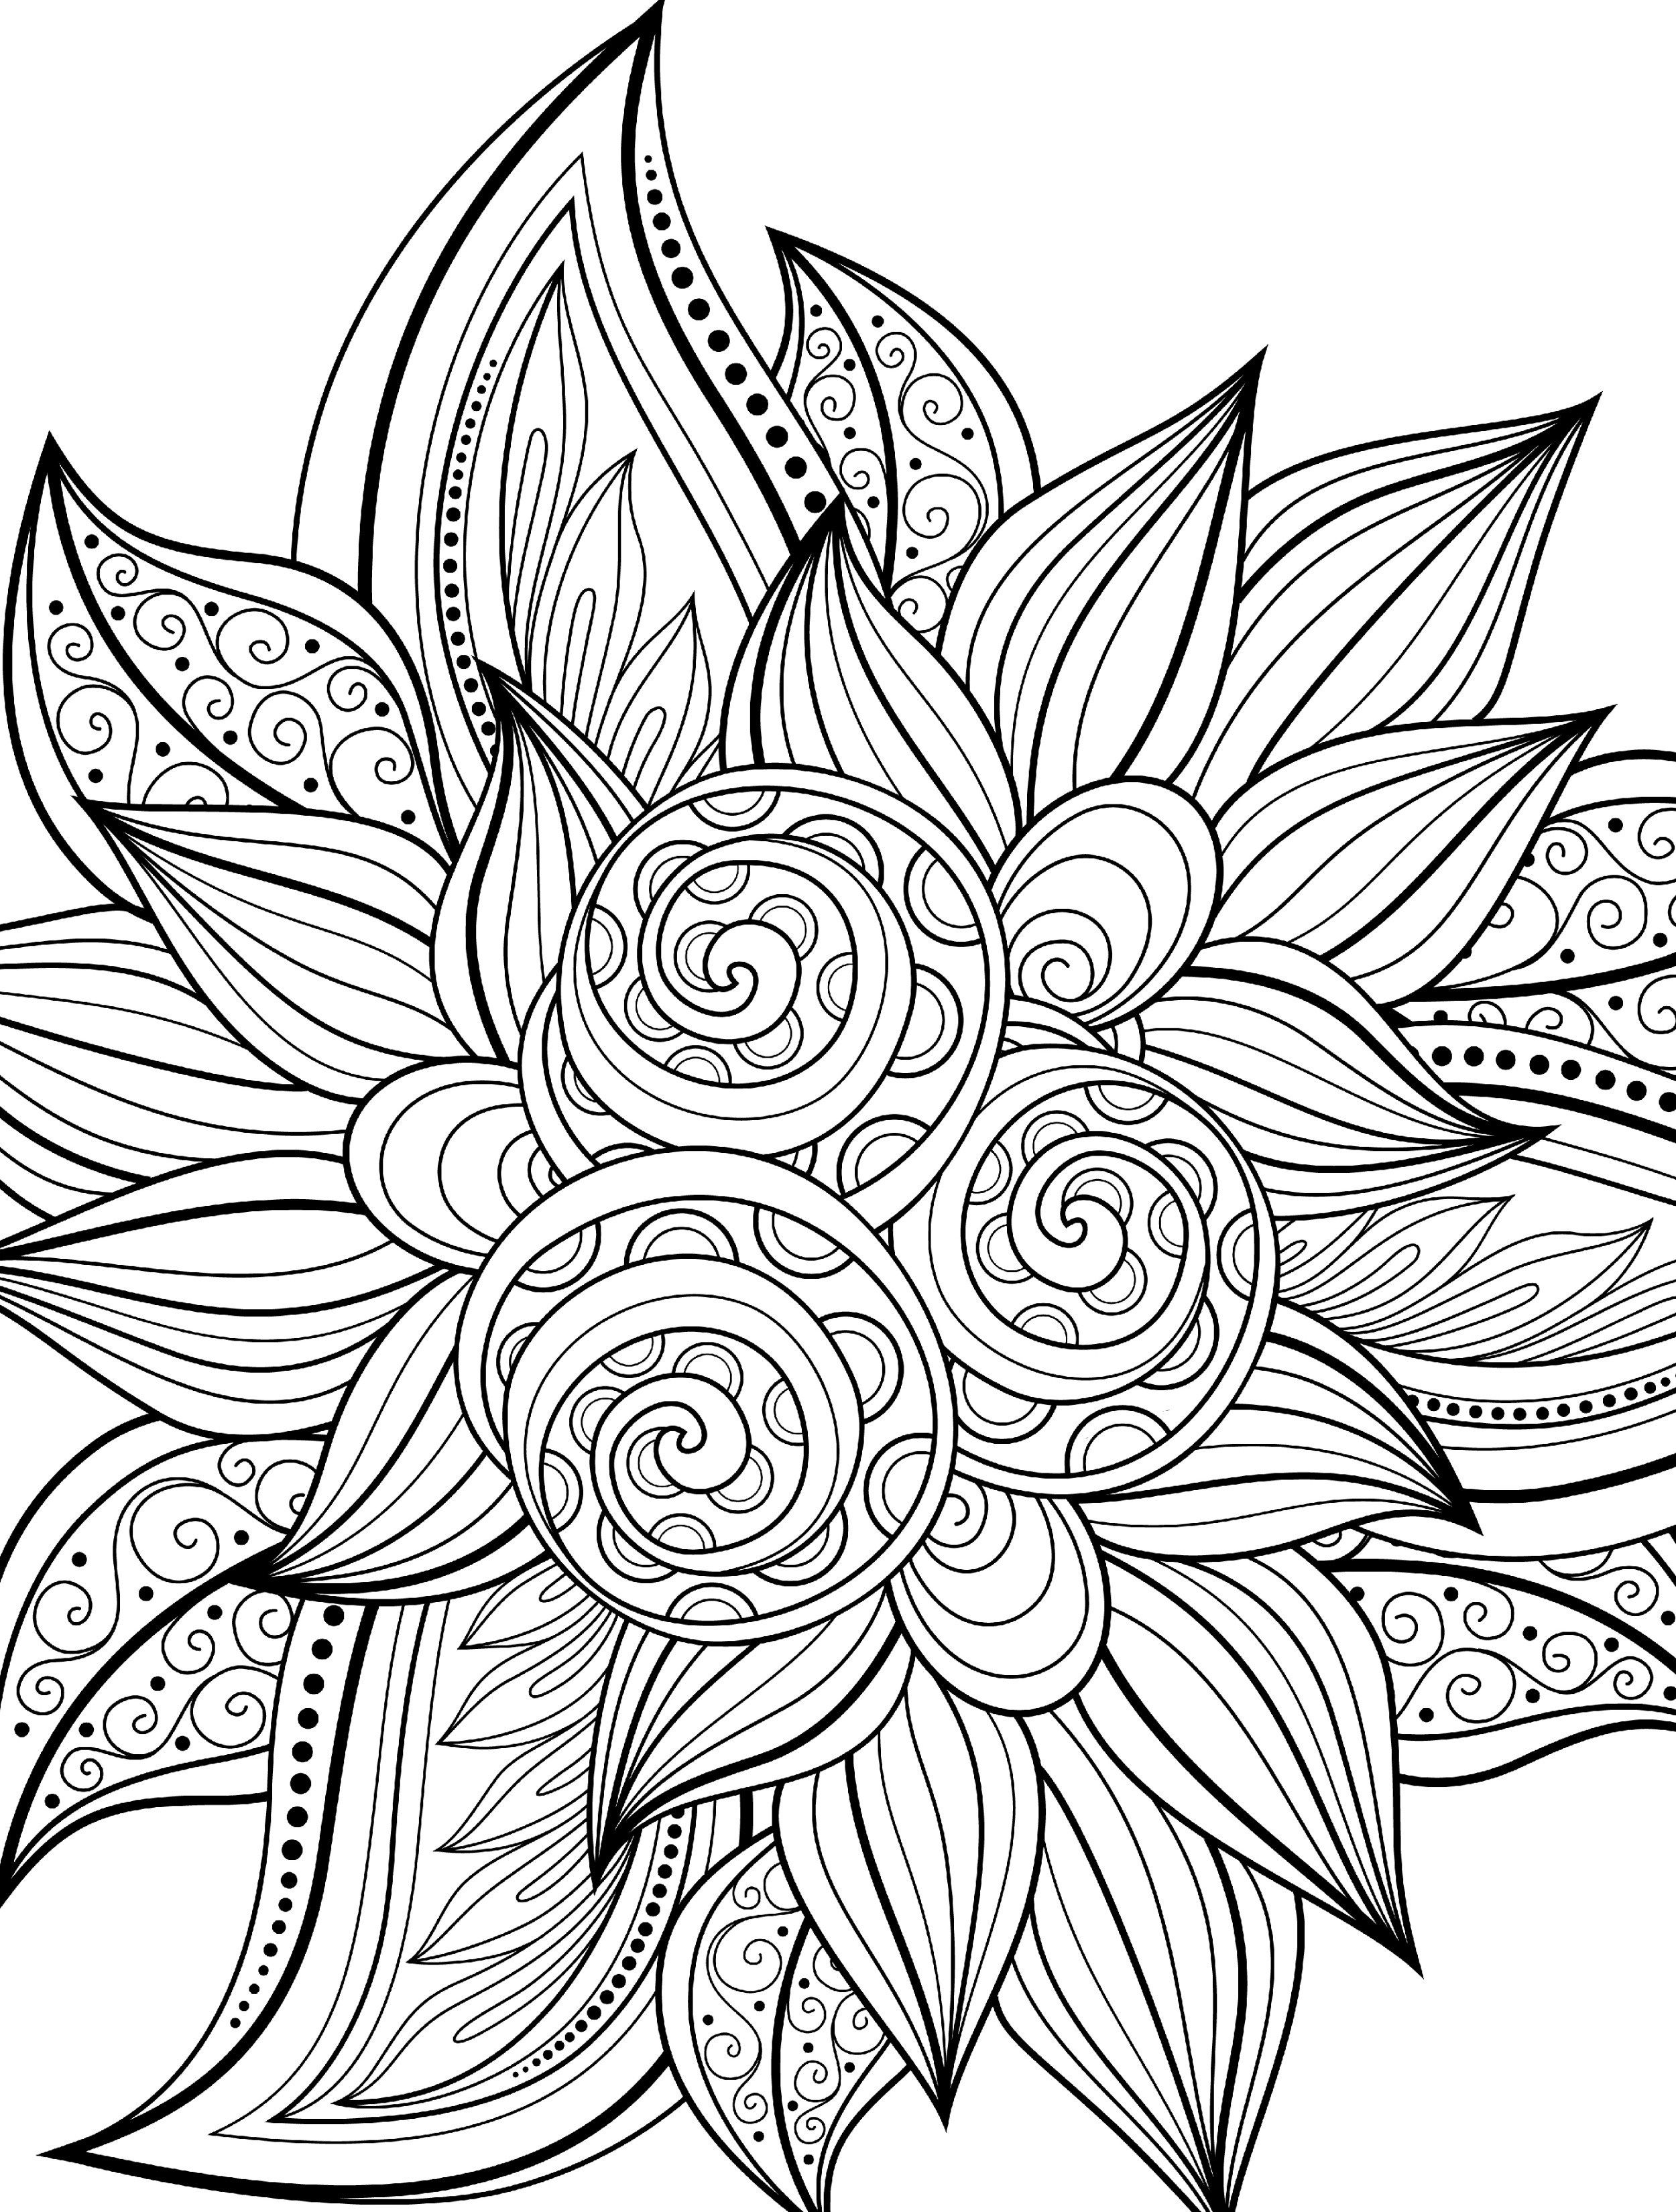 10 free printable holiday adult coloring pages - Free Printable Coloring Pictures